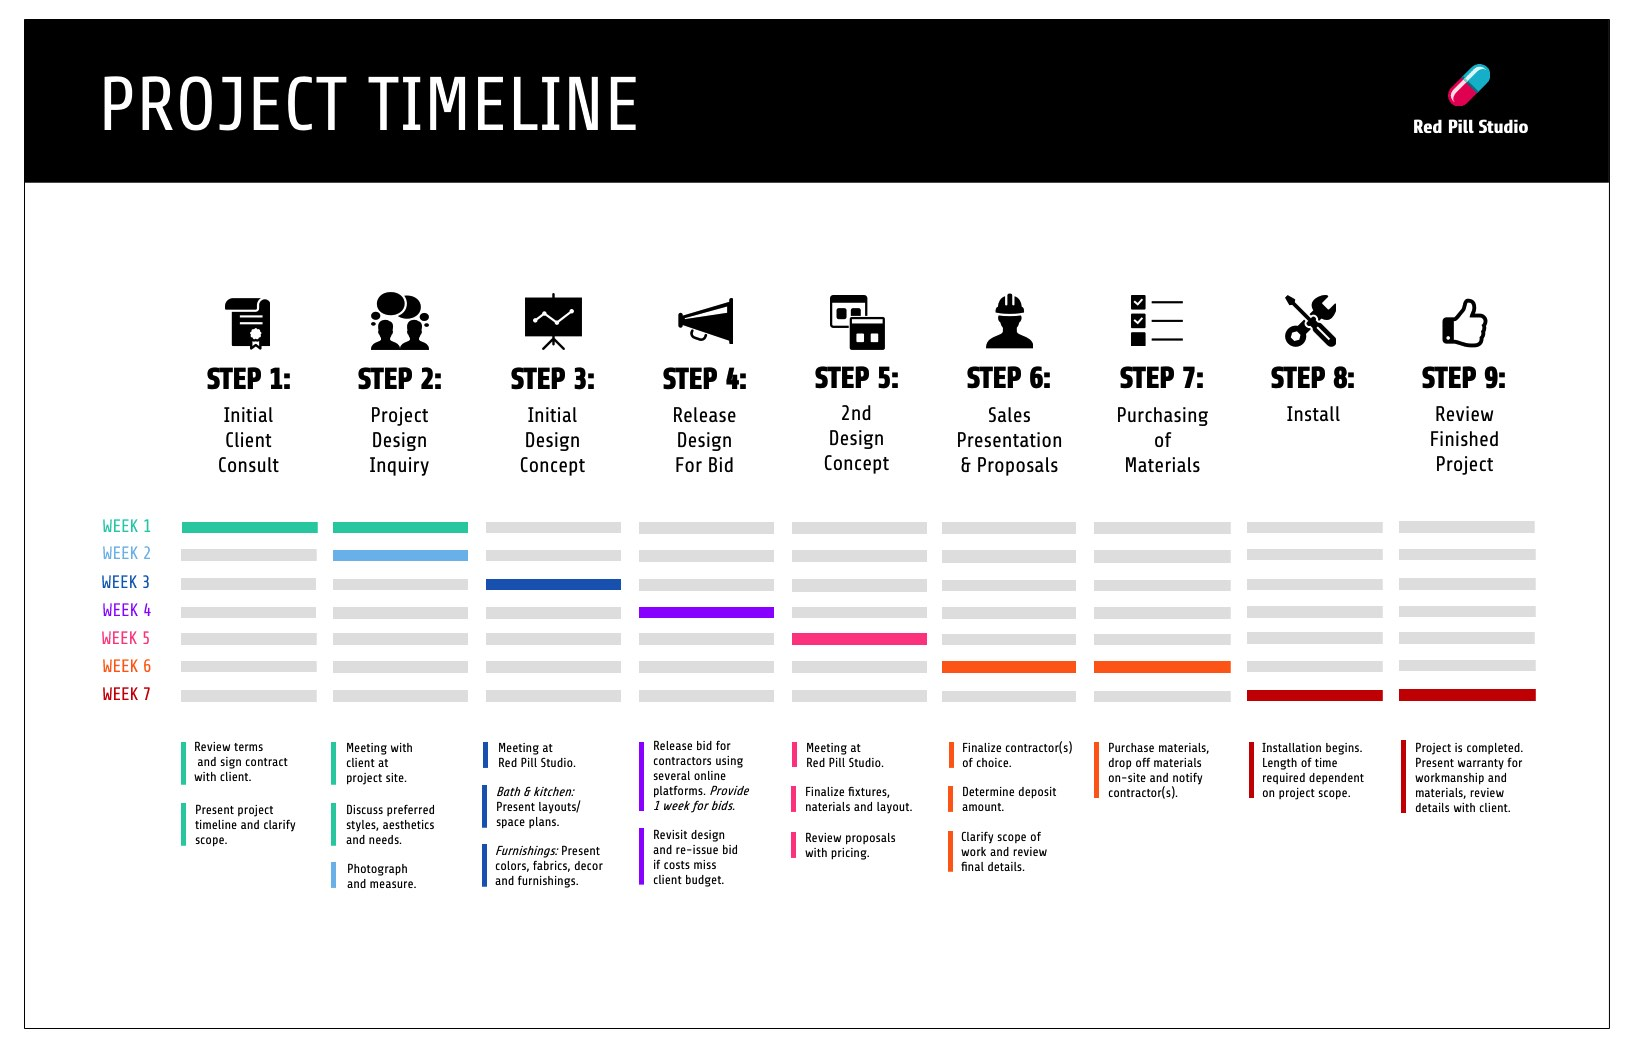 36 timeline template examples and design tips